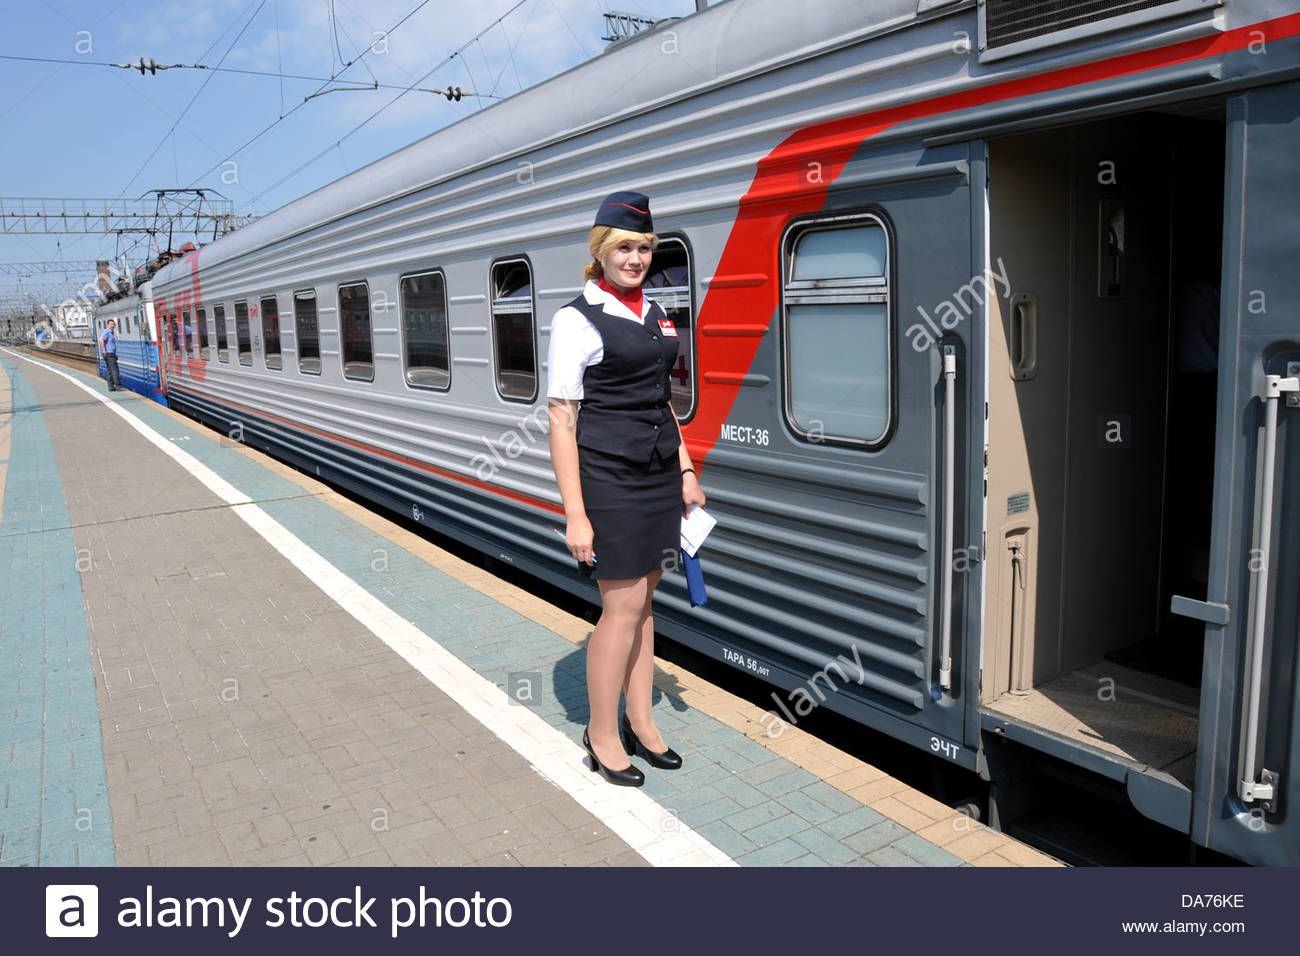 hostess-of-the-state-railways-rzd-on-the